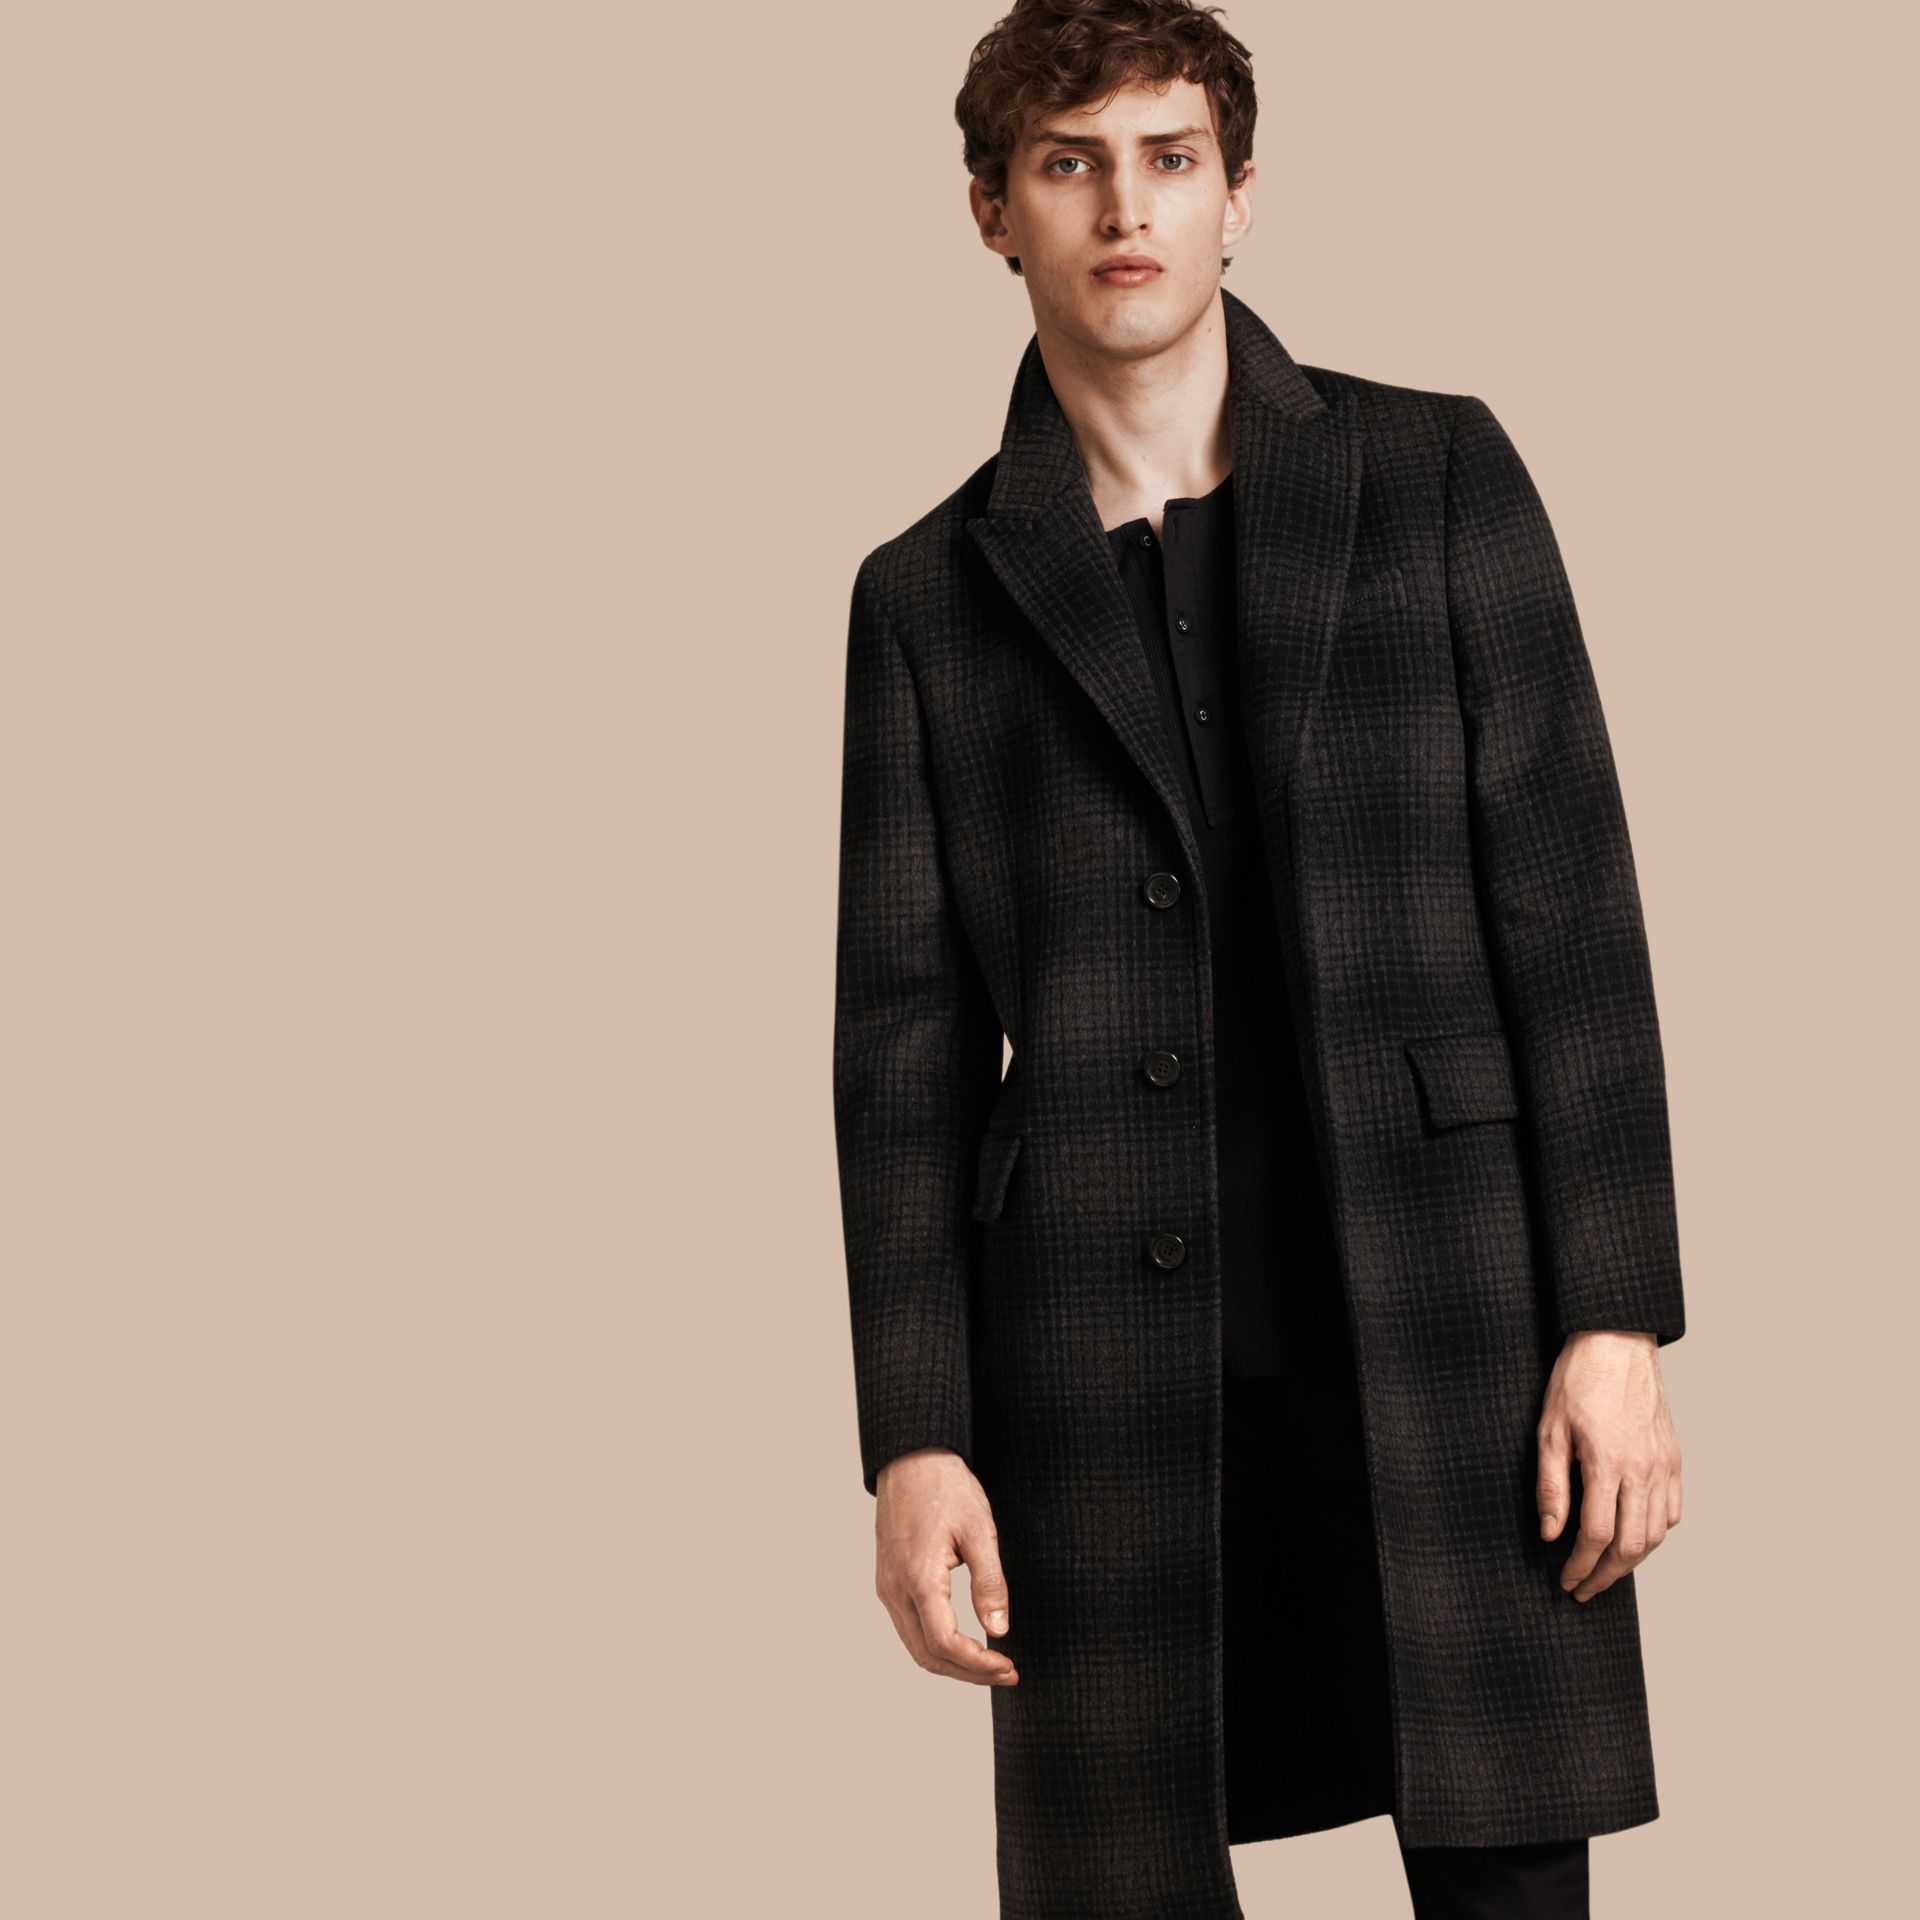 Charcoal melange Tailored Check Wool Cashmere Coat - gallery image 1